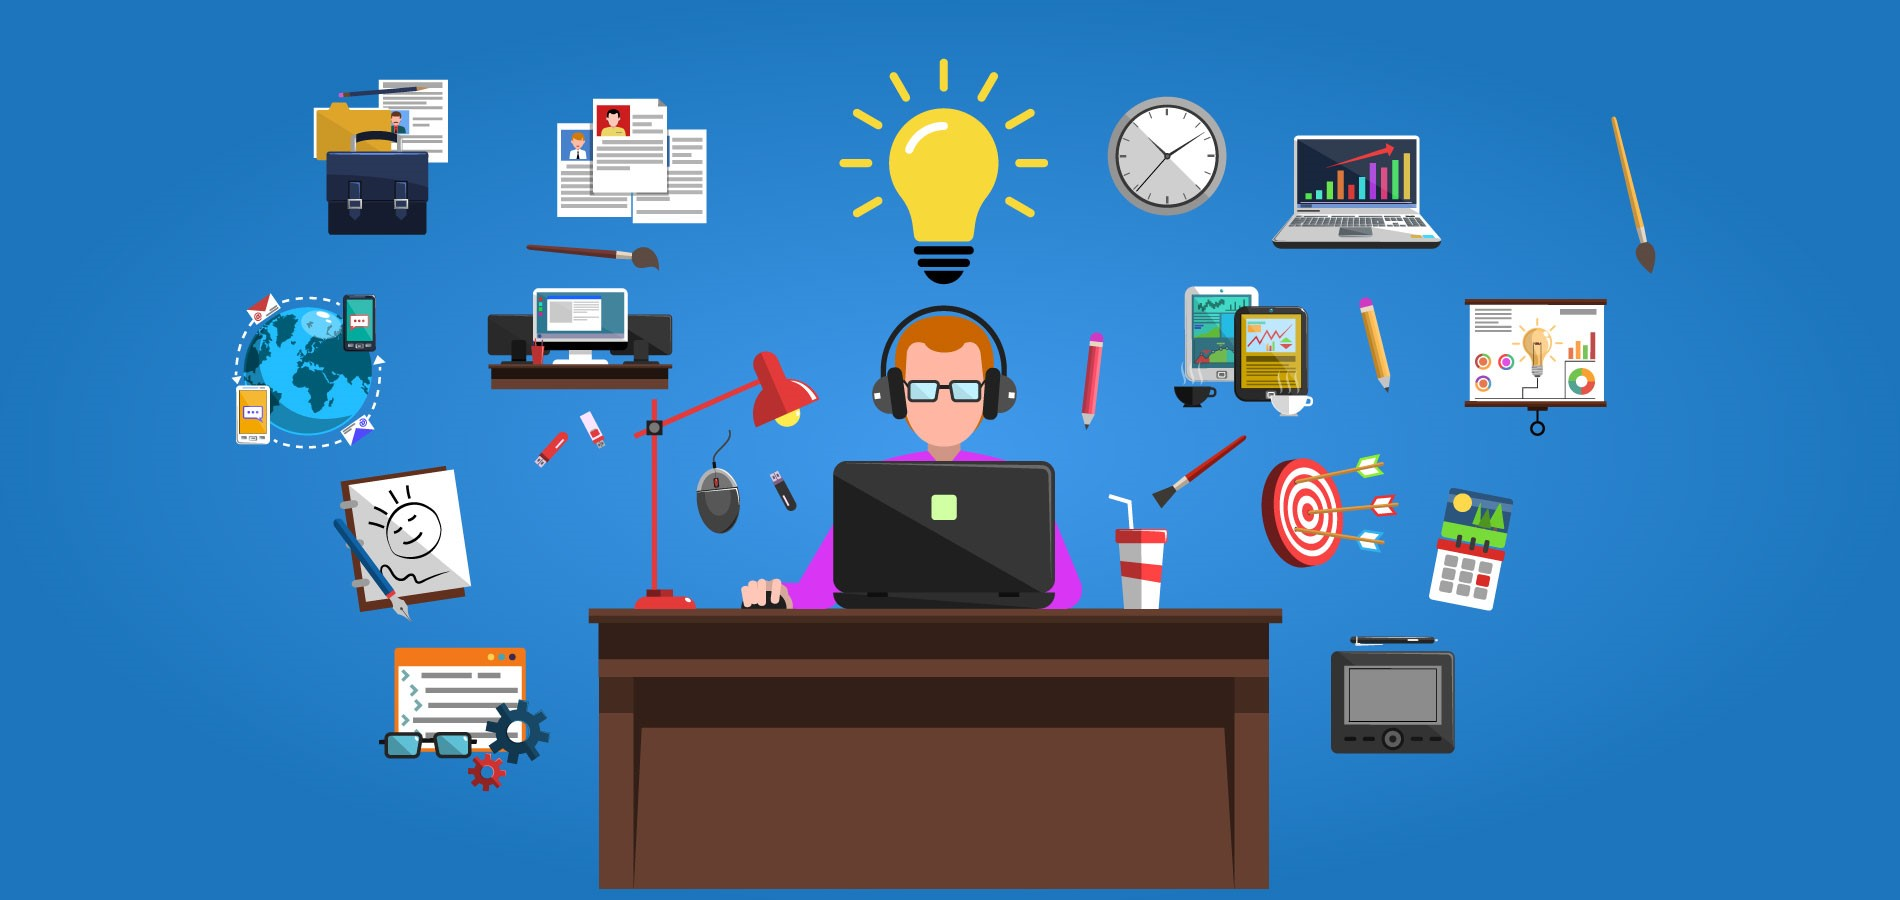 Self Employment Ideas for Starting a Business in 2021